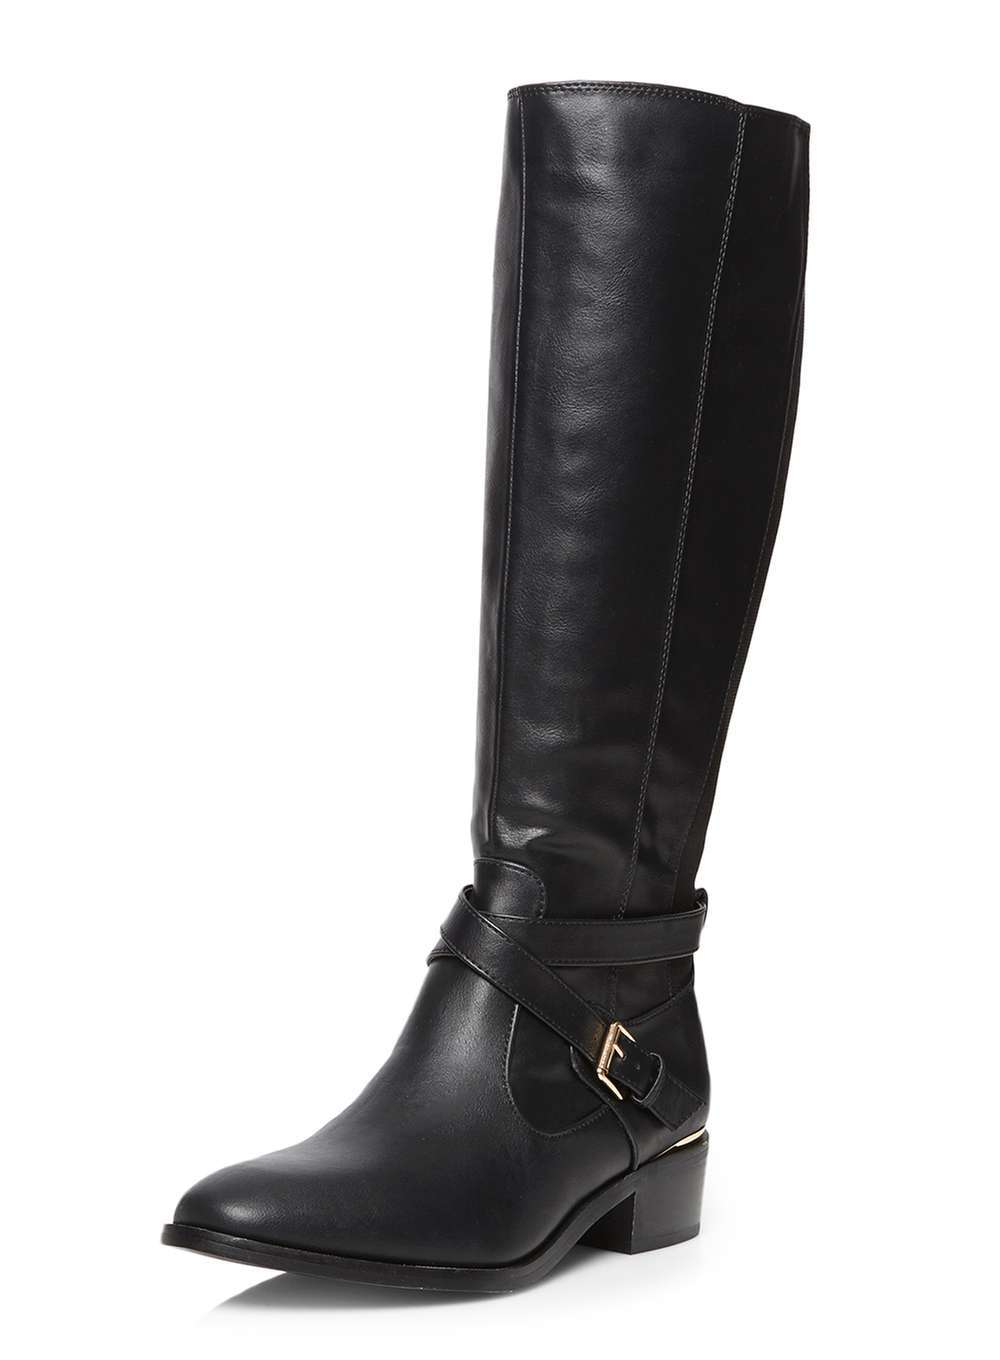 Womens Wide Fit Black Wrist Knee Boot Black - predominant colour: black; occasions: casual, creative work; material: faux leather; heel height: mid; embellishment: buckles; heel: block; toe: round toe; boot length: knee; style: standard; finish: plain; pattern: plain; season: a/w 2016